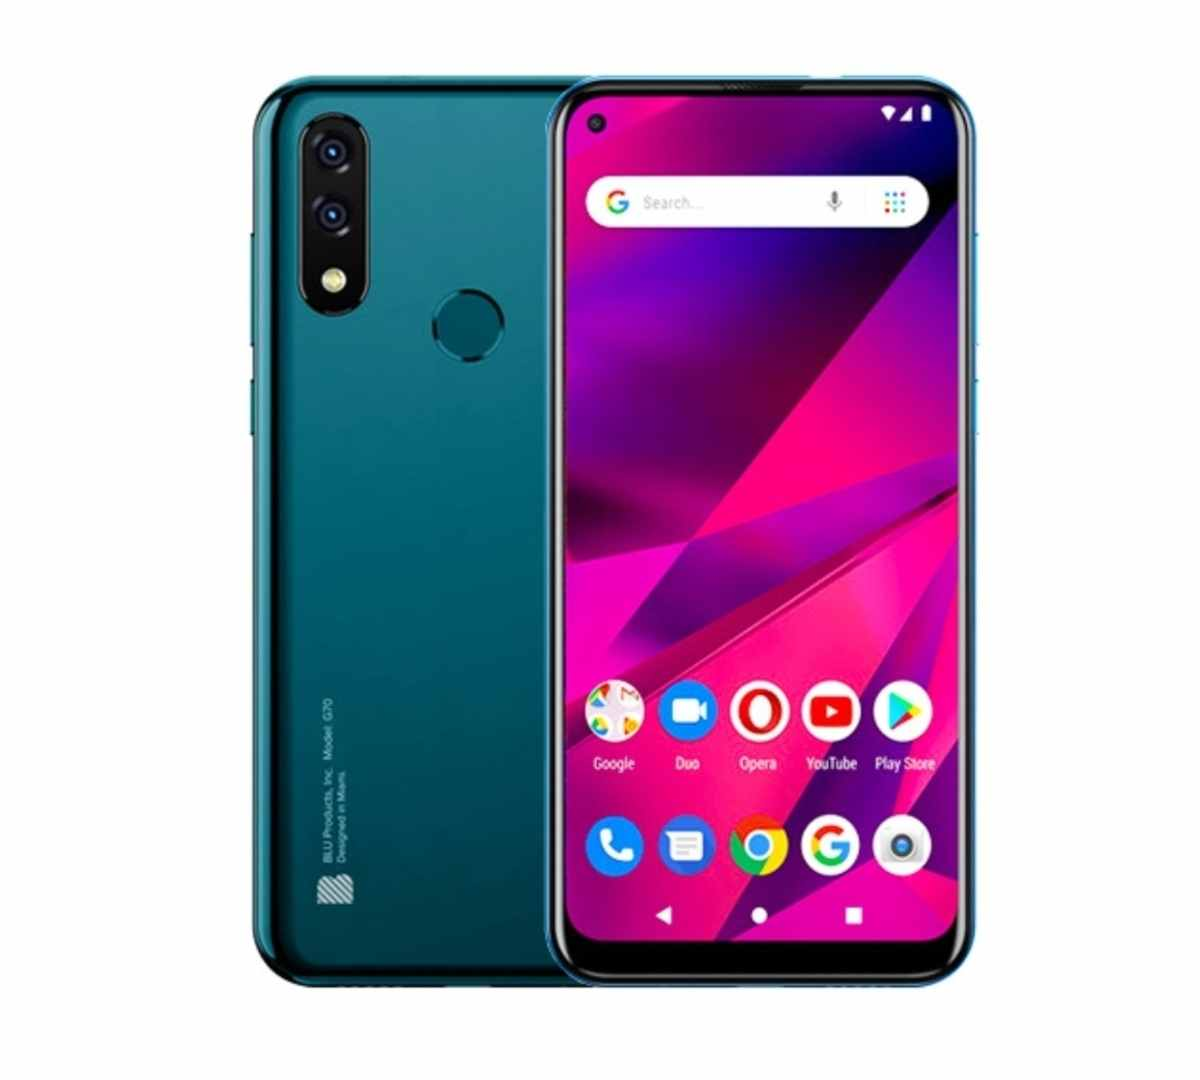 BLU G70 price in Nigeria, price of blu g70, how much is blu g70, where to buy blu g70 in Nigeria, Blu G70 specs and price in Nigeria, Blu g70 specs, reviews and price, Blu G70 price, Blu G70 price and specs, Blu G70 image, Blu G70 in Nigeria, USA, India